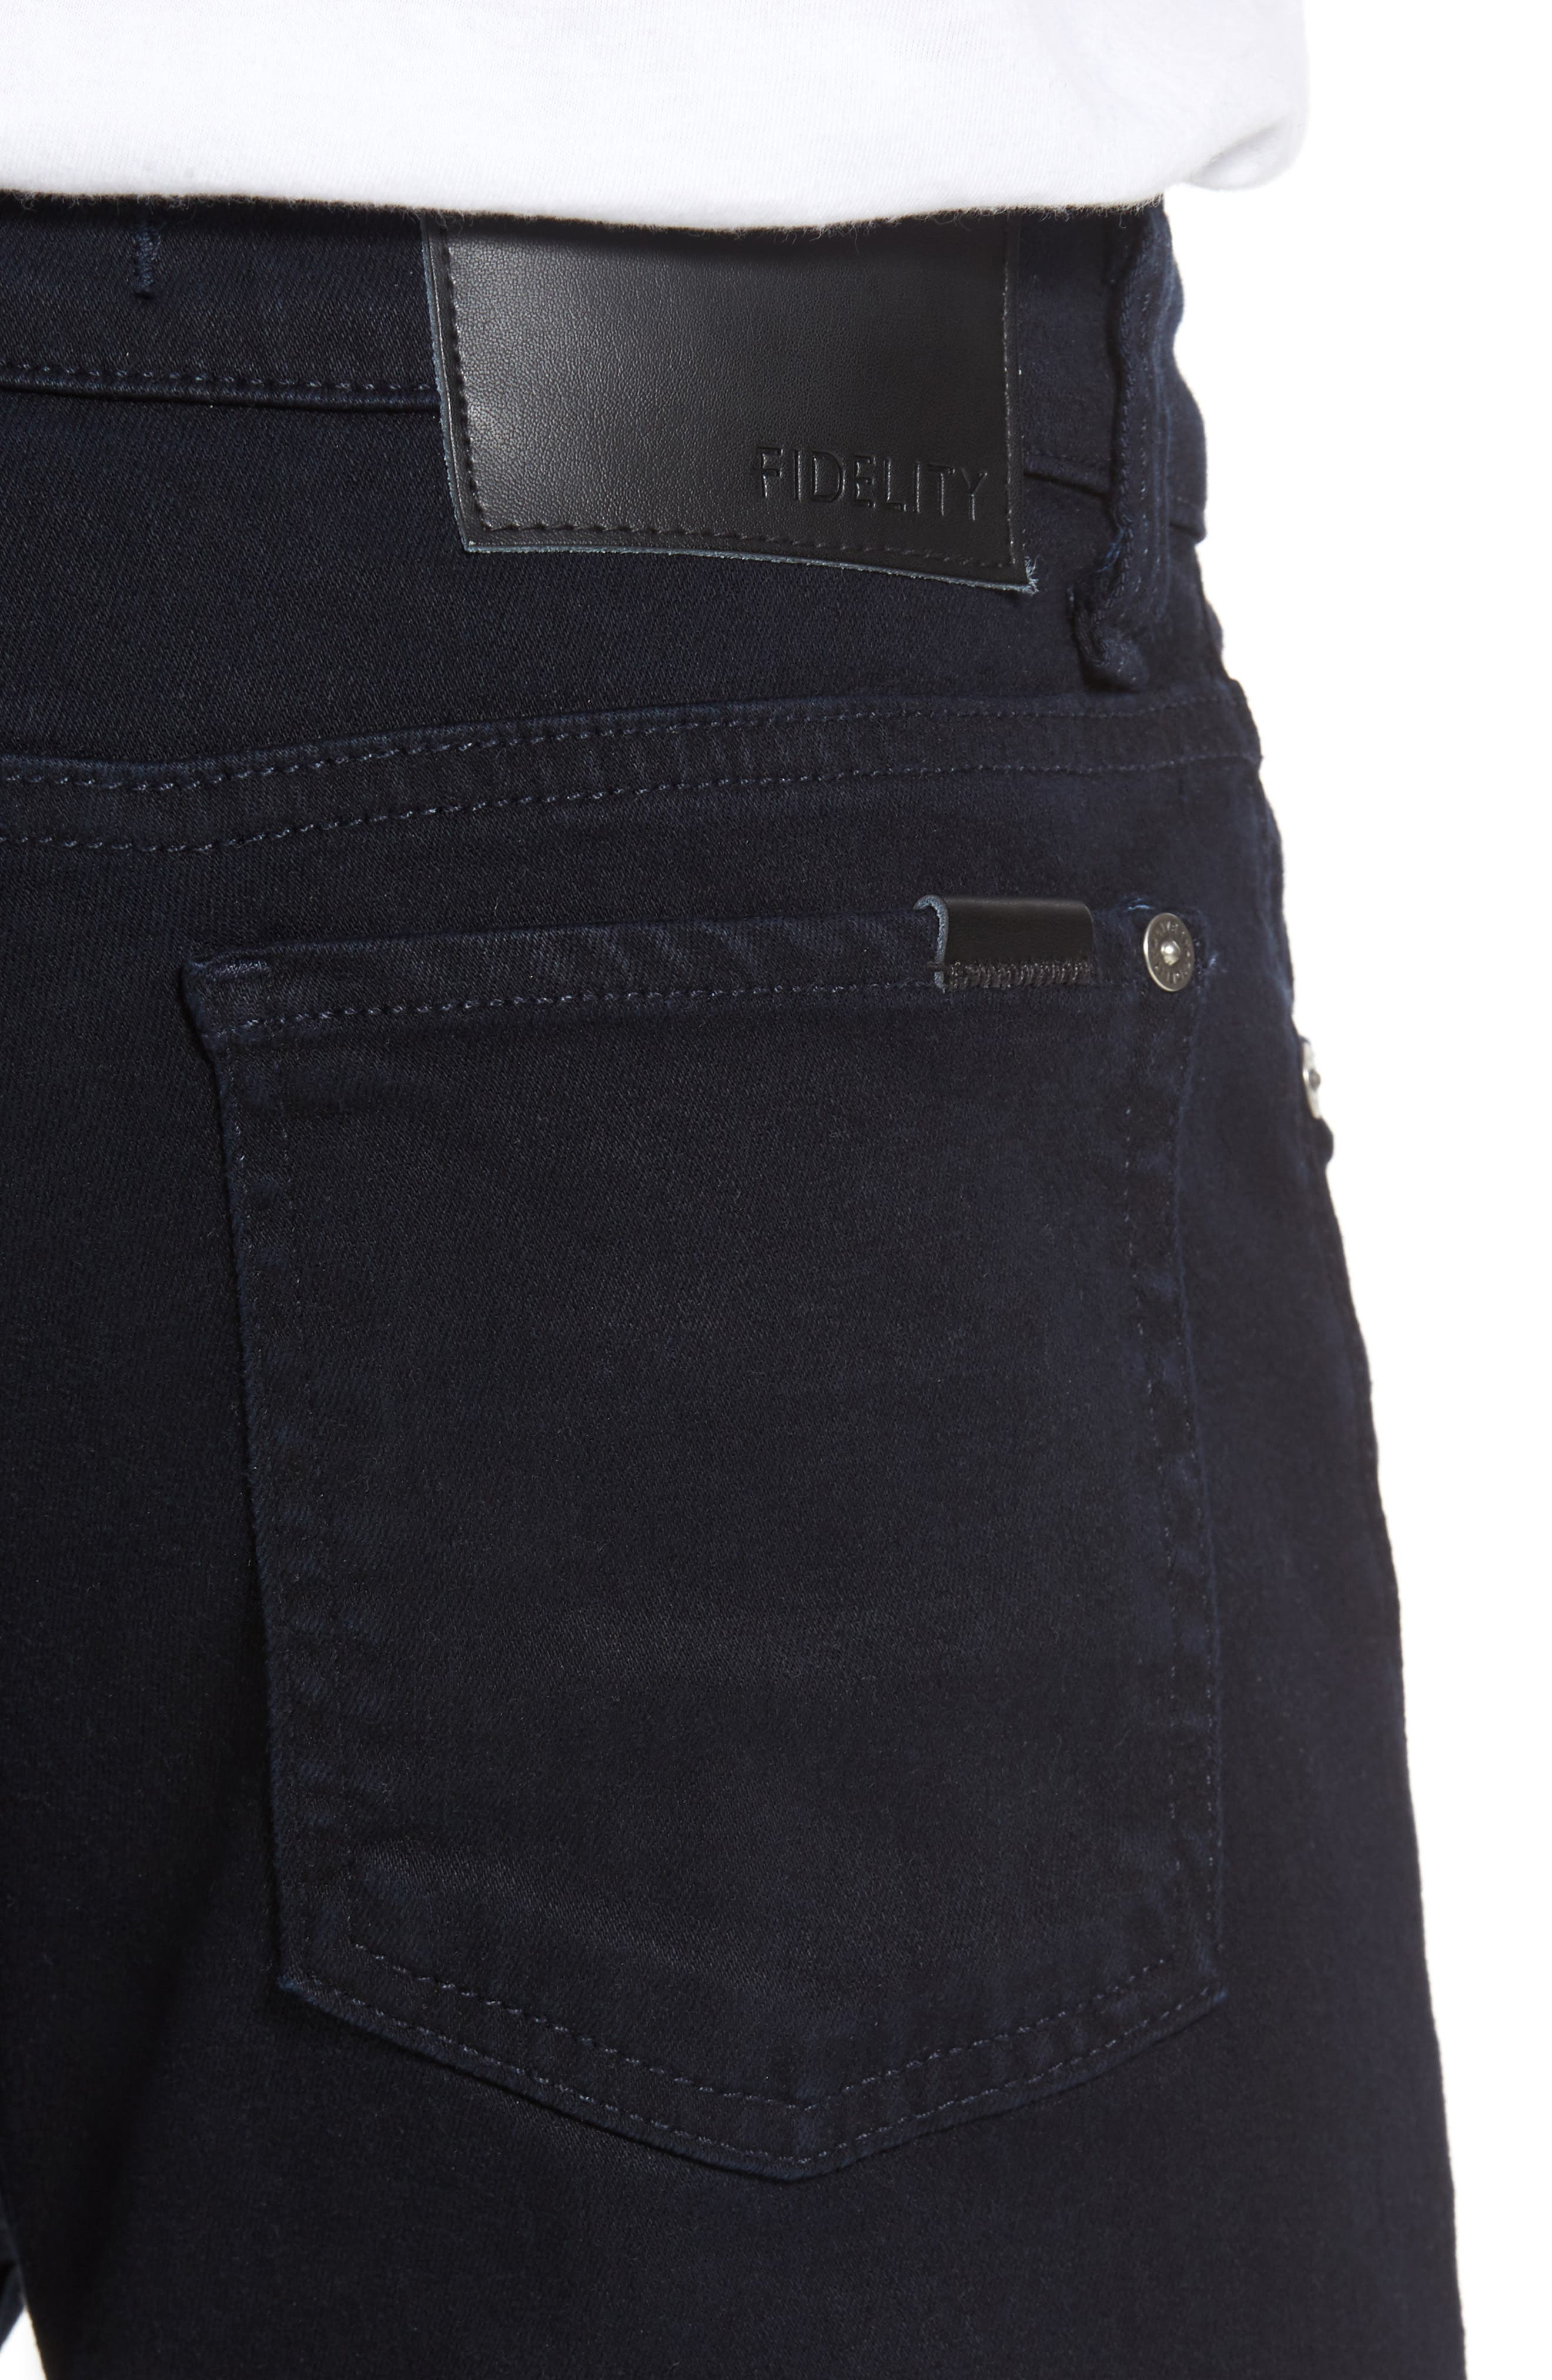 Alternate Image 4  - Fidelity Denim Torino Slim Fit Jeans (Everblue)